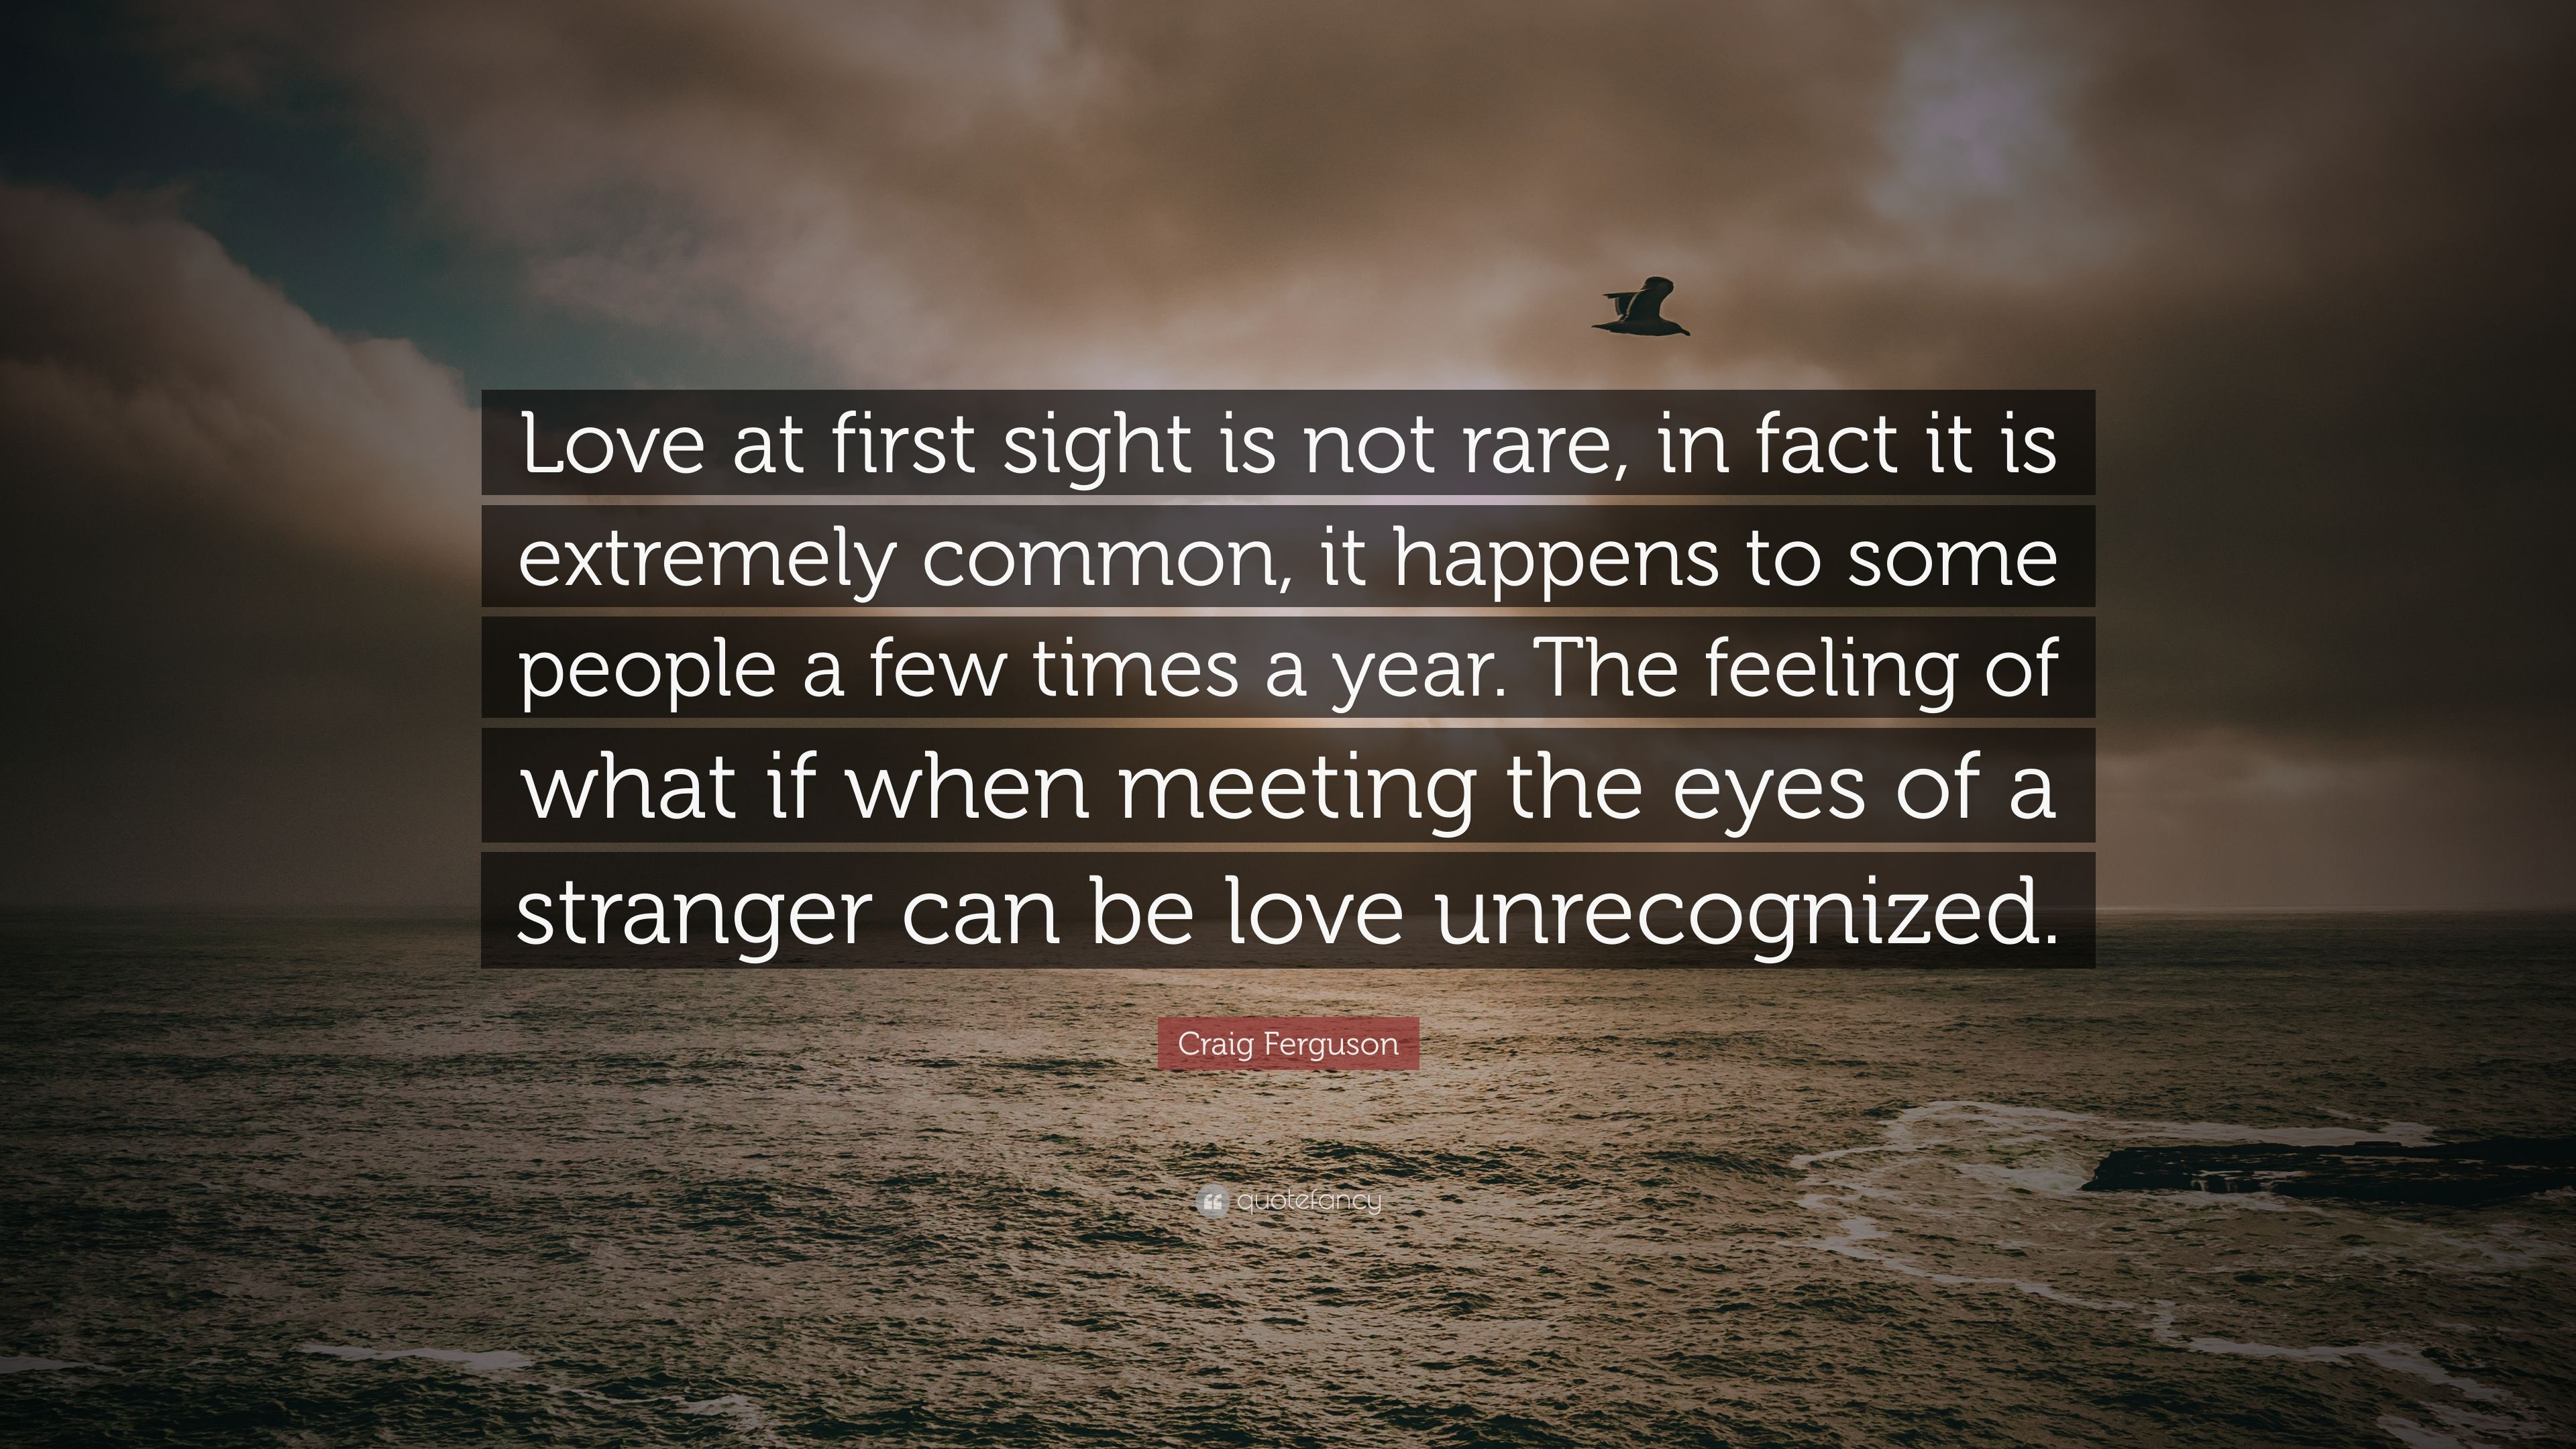 "Craig Ferguson Quote ""Love at first sight is not rare in fact it"